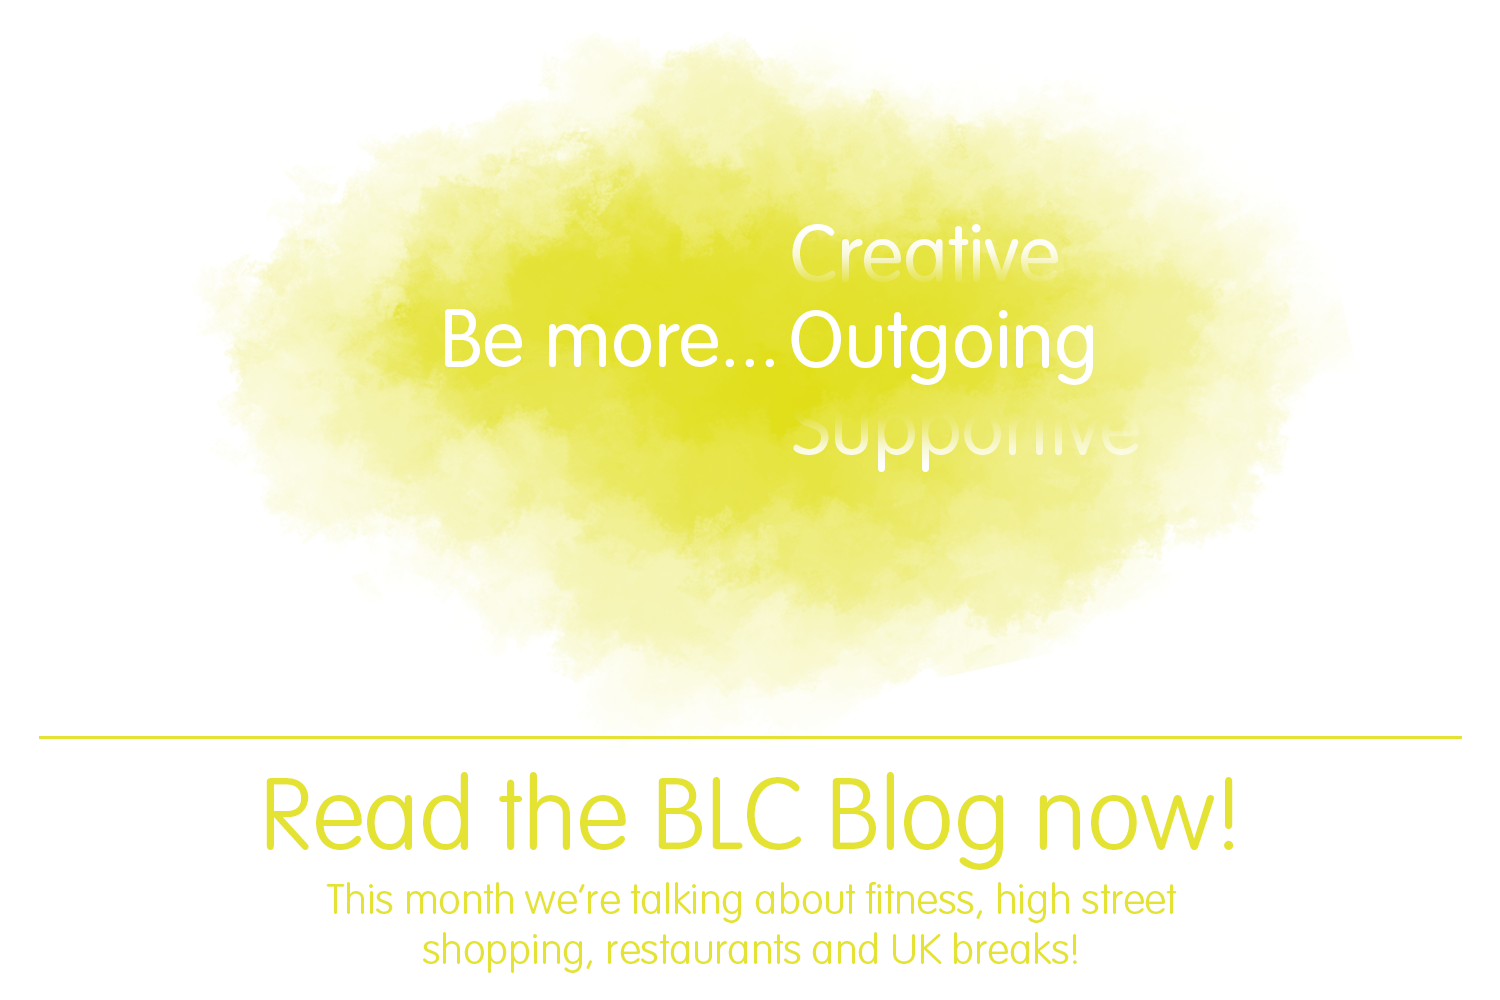 BLC Blog - Be more... Outgoing!